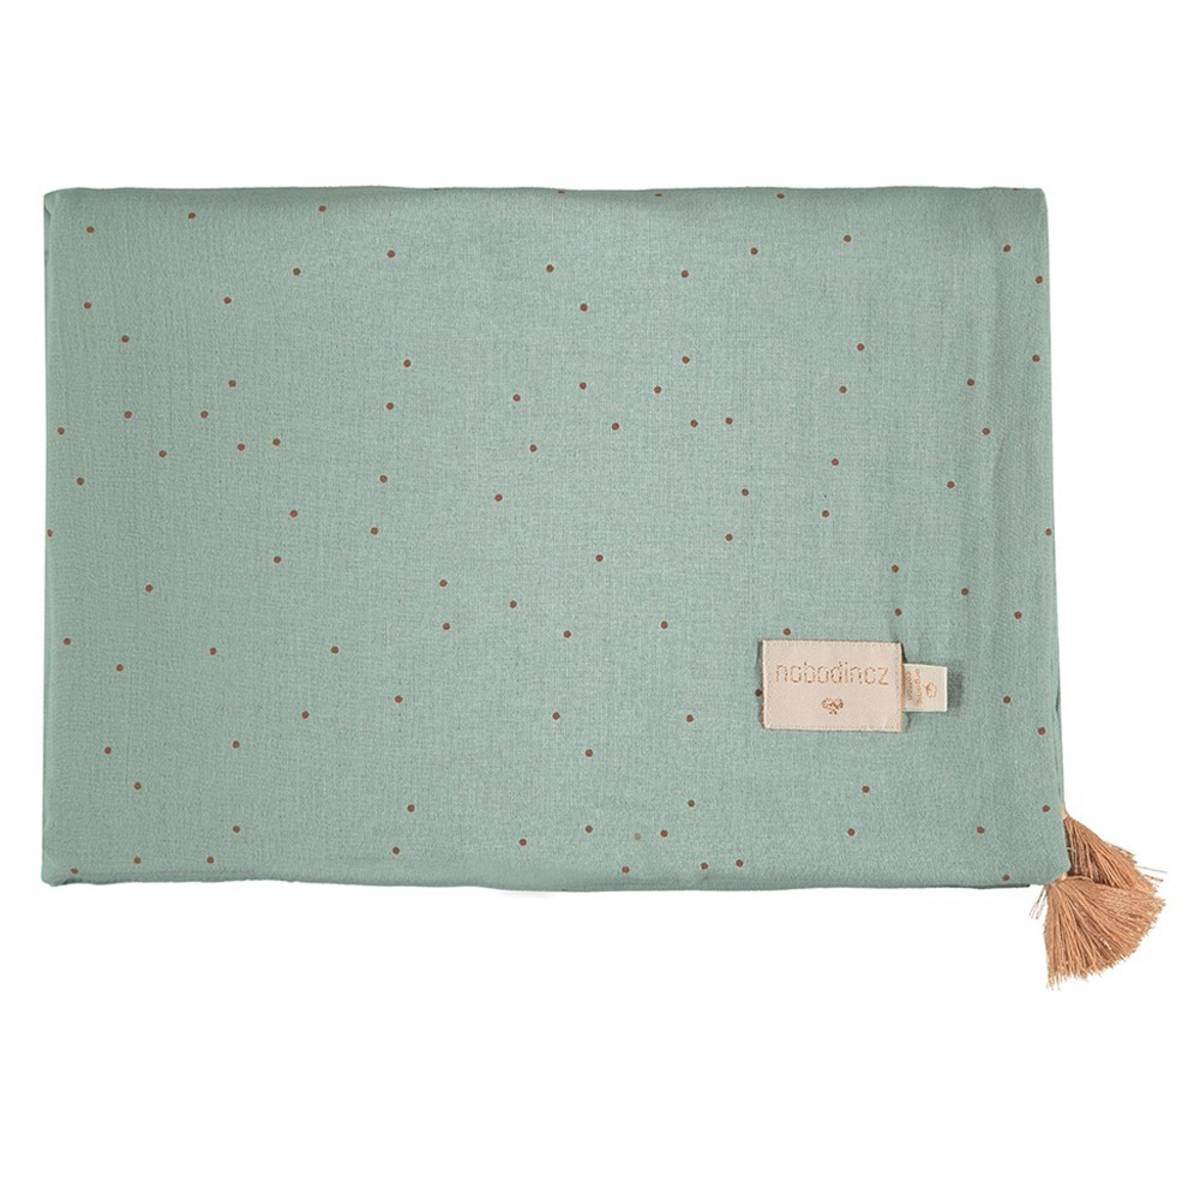 Nobodinoz Couverture d'Eté Treasure - Toffee Sweet Dots & Eden Green